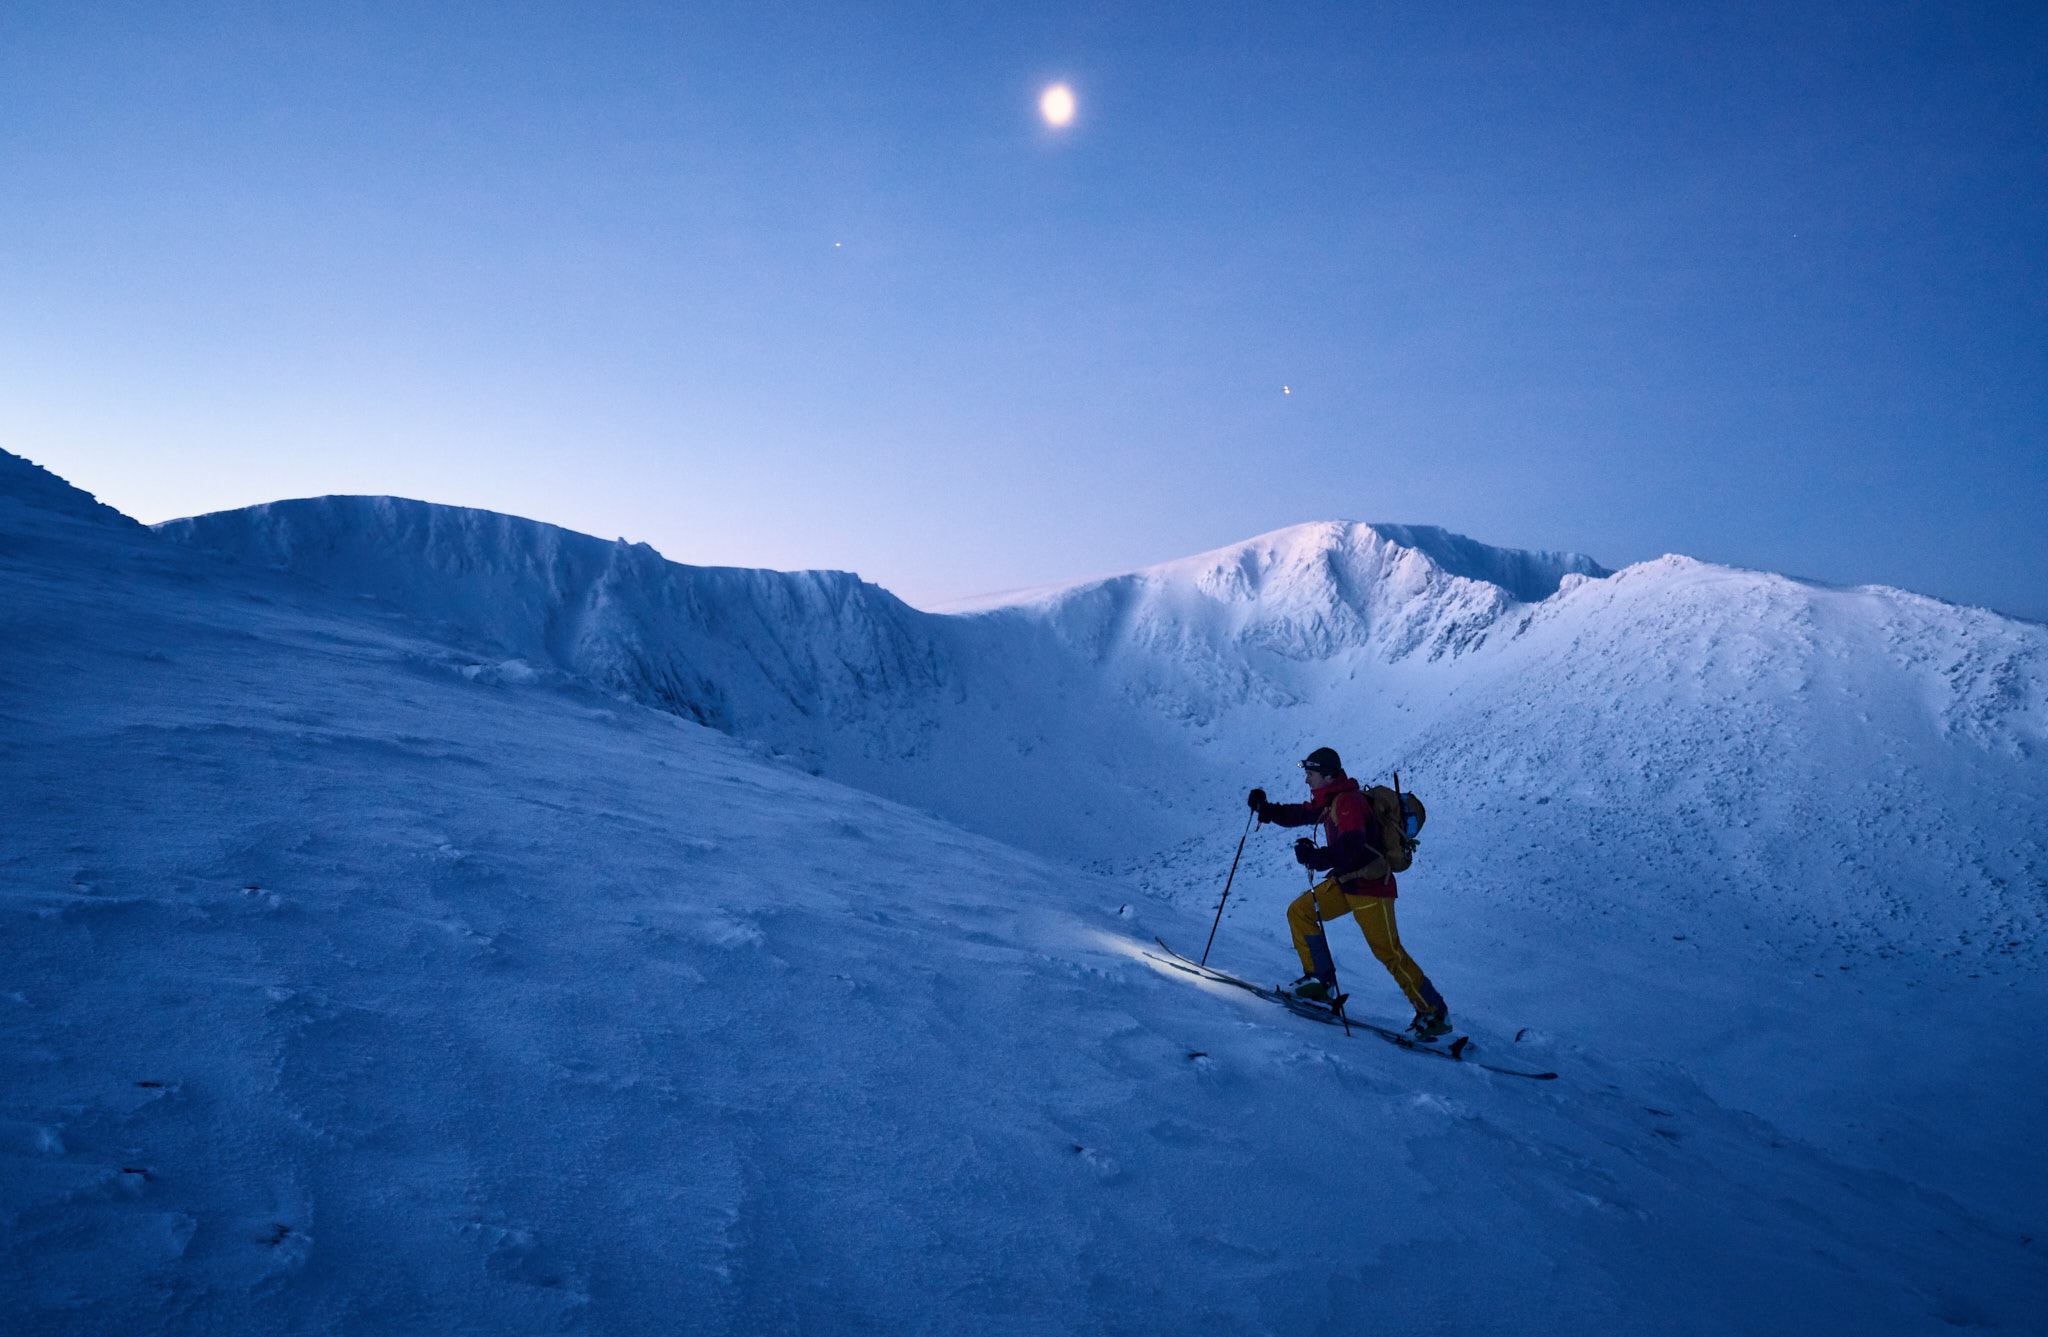 One of several very early morning starts during the making of the film. Pete skinning up past Coire an t-Sneachda as first light begins to glance the top of the Cairngorm plateau.